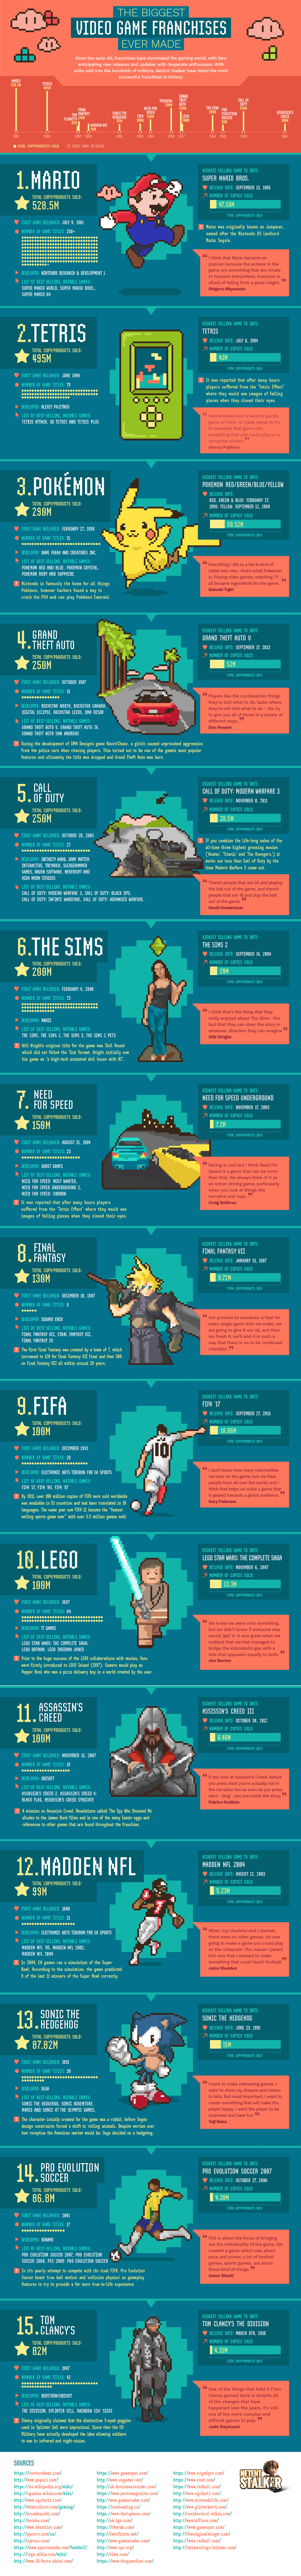 Video Game Franchises Infographic